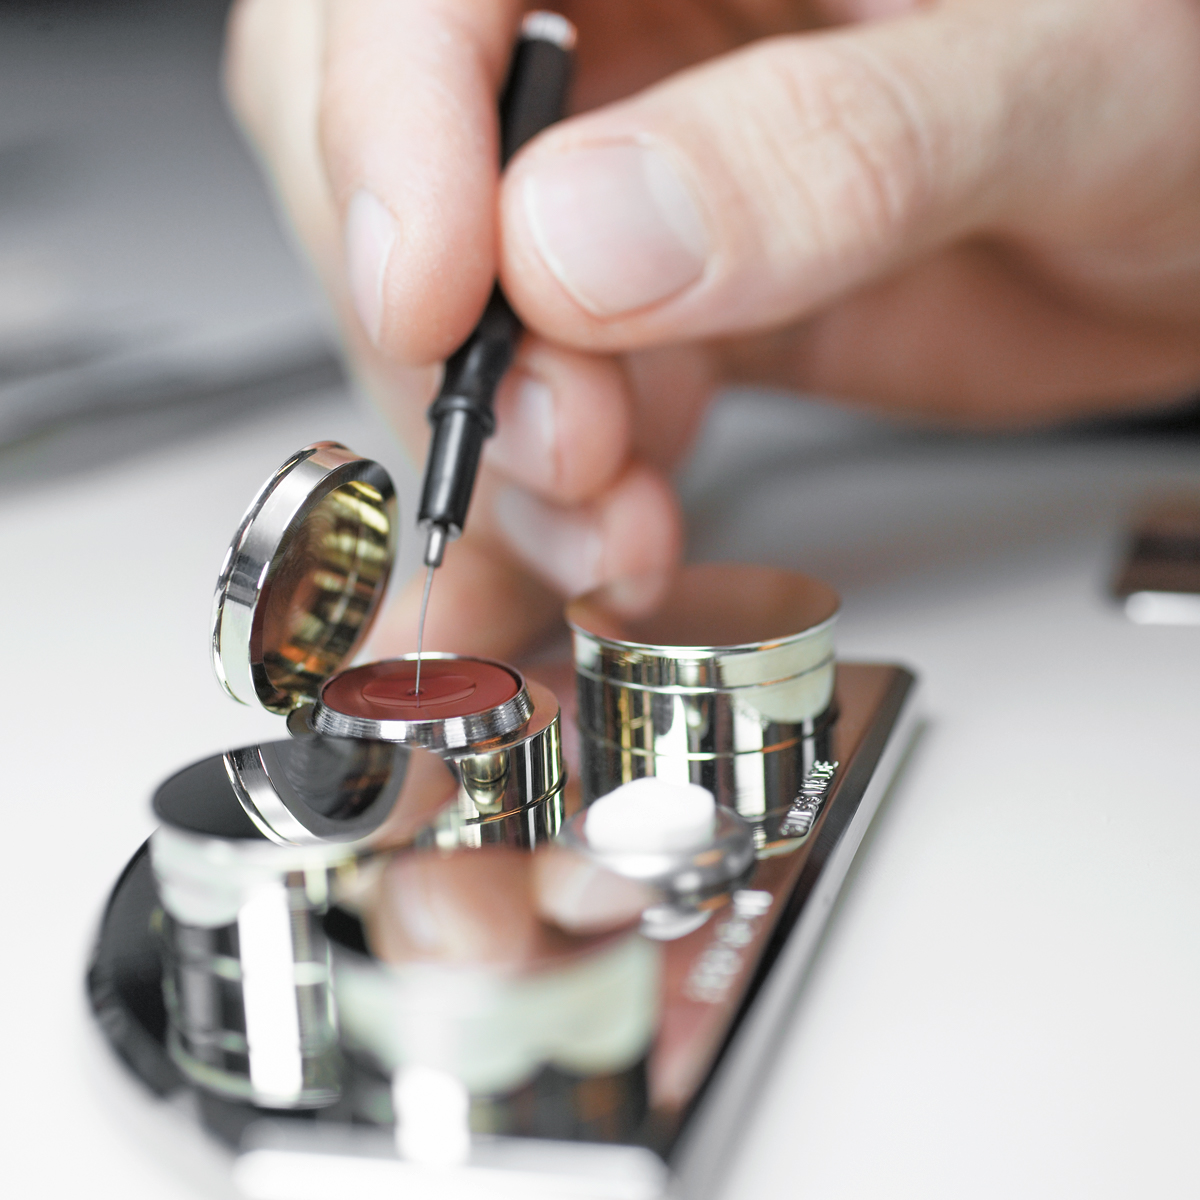 Tribology. The combined knowledge of engineers, chemists and watchmakers to prevent a timepiece from grinding to a halt. At Rolex, our dedicated tribologists work to raise reliability, accuracy and comfort to unprecedented levels. Discover more https://t.co/bFisJ792zp #Perpetual https://t.co/lUtM11lDGM